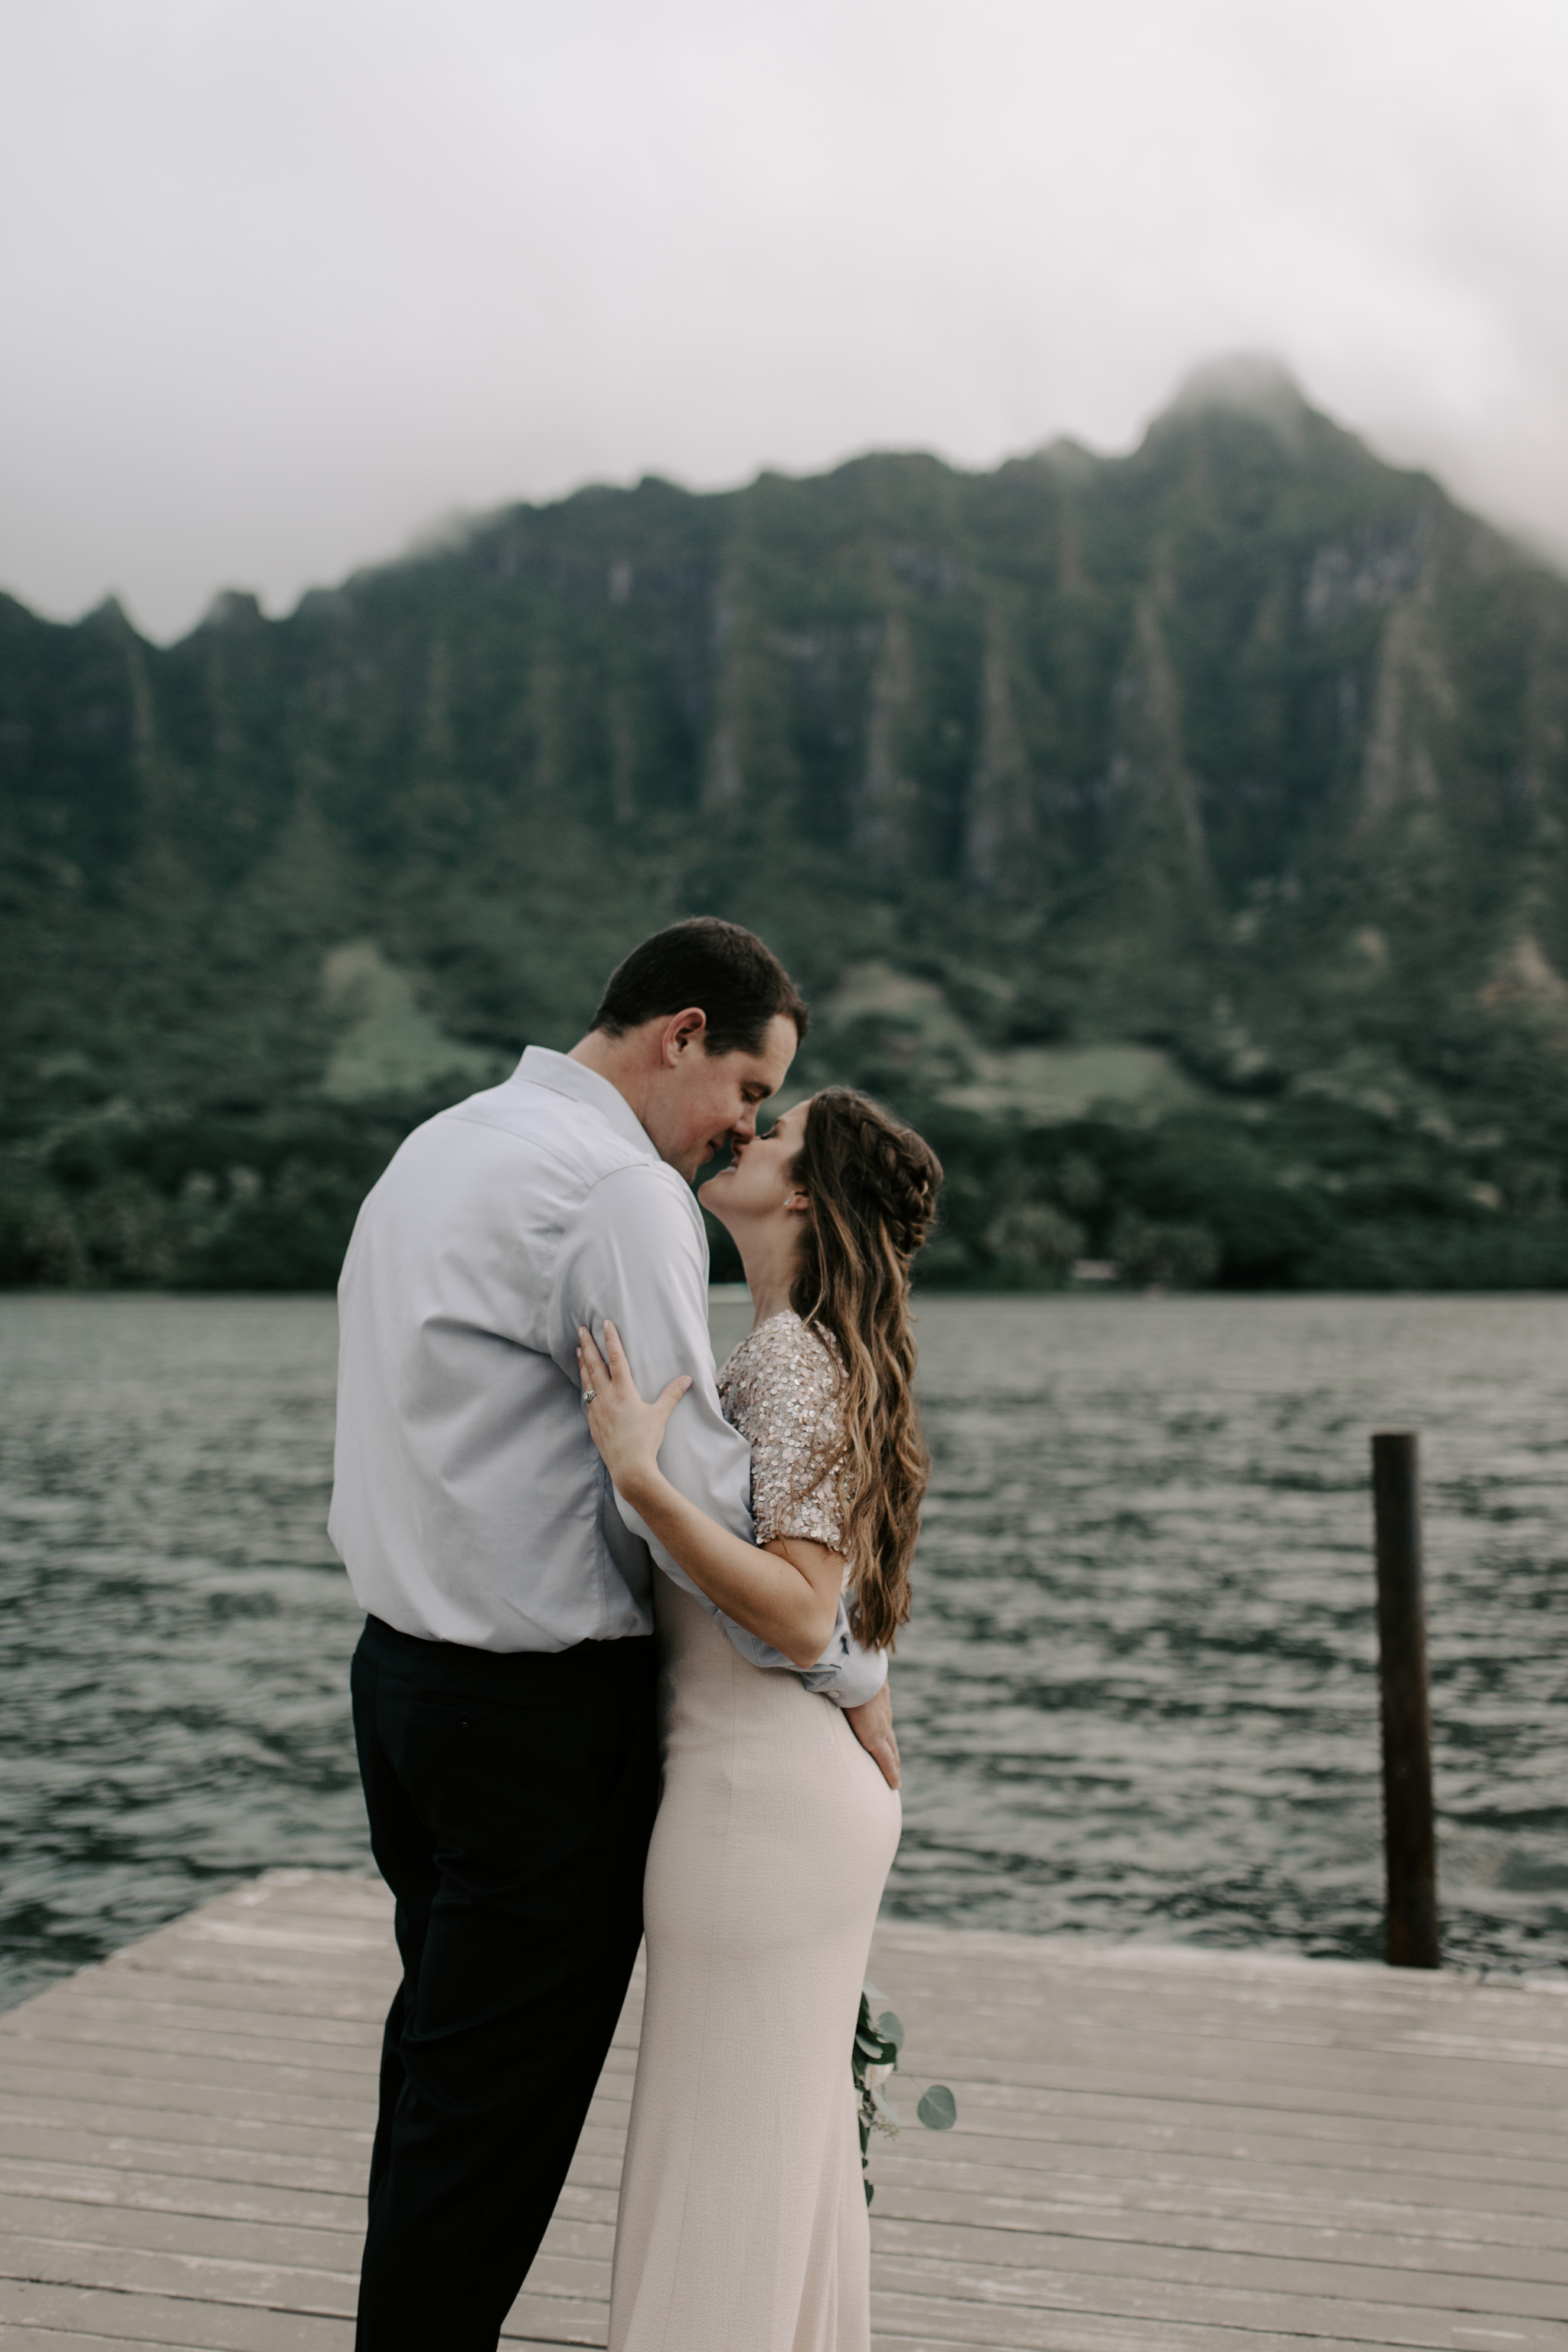 Kualoa Ranch Secret Island Elopement by Hawaii Wedding Photographer Desiree Leilani